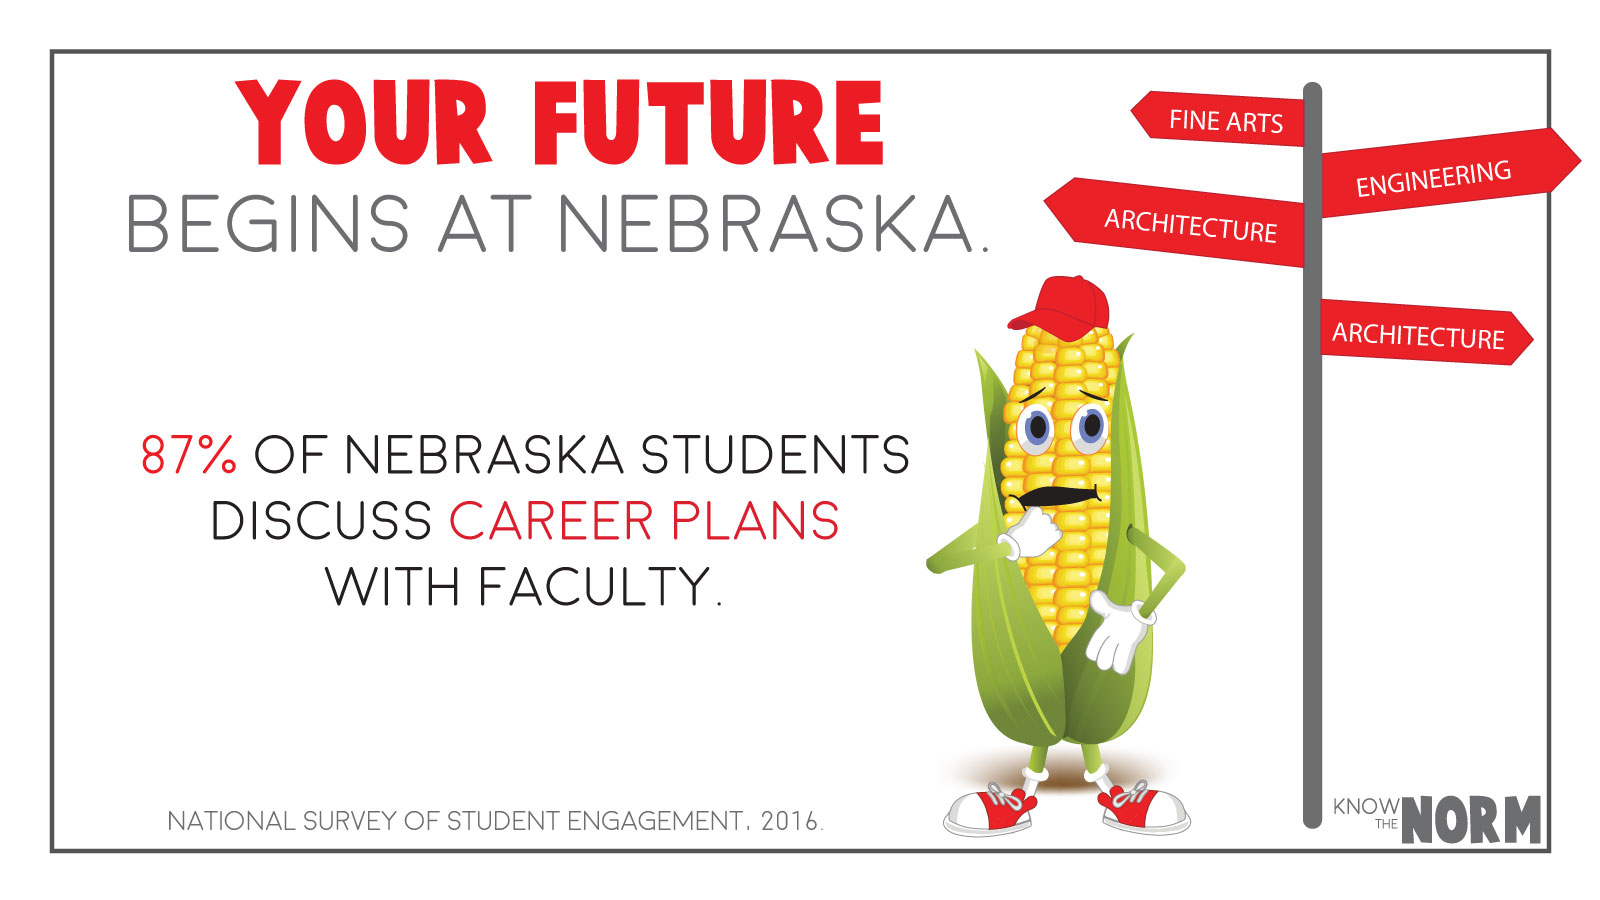 Your future begins at Nebraska